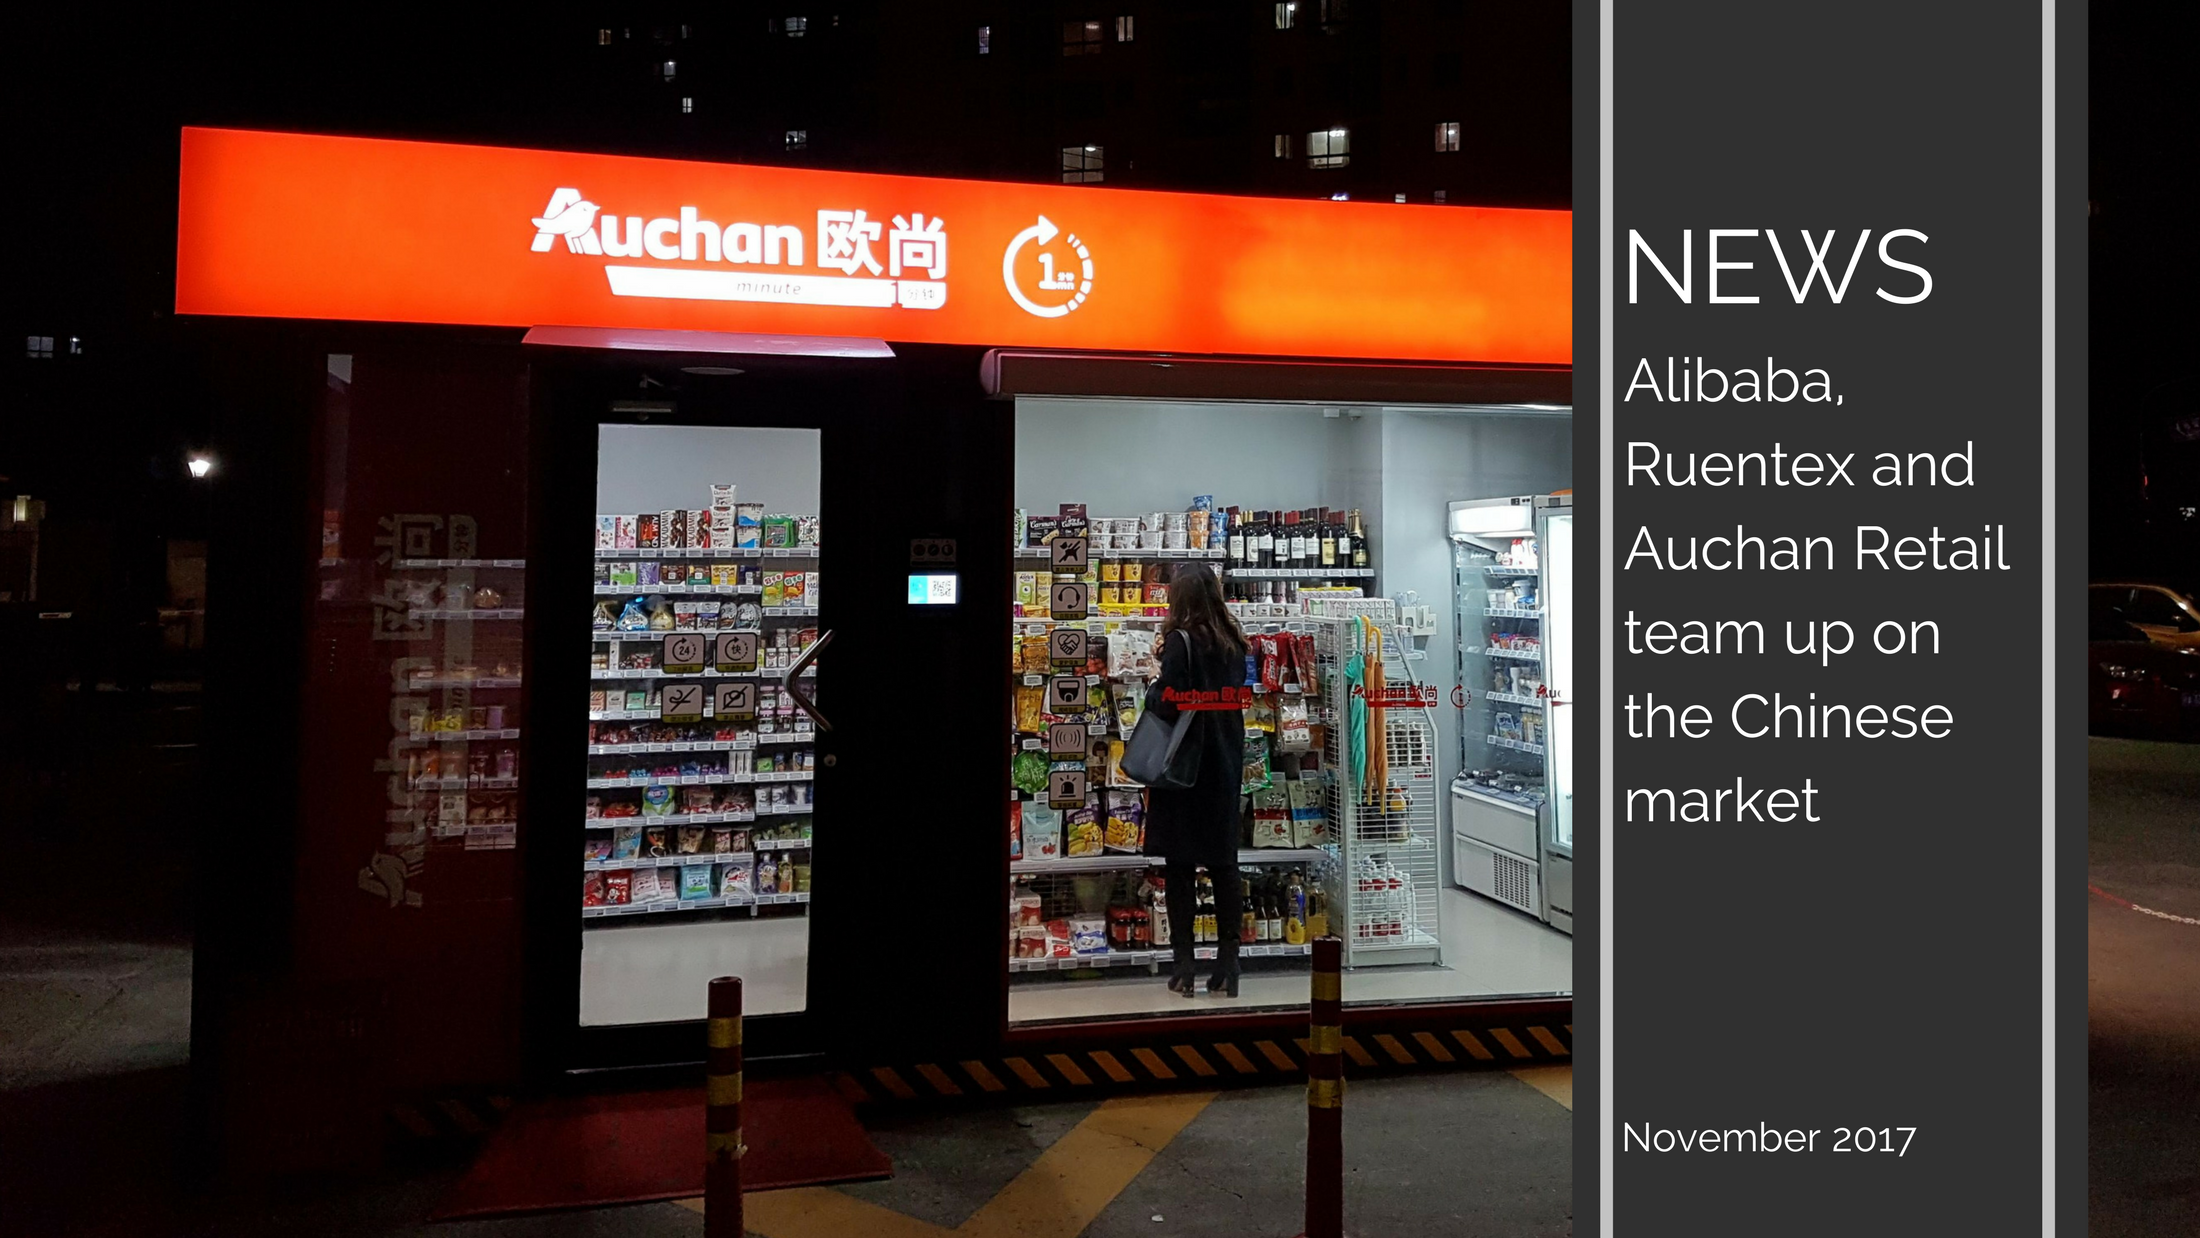 Trends News suite 1 1 - Alibaba, Ruentex and Auchan Retail team up on the Chinese market